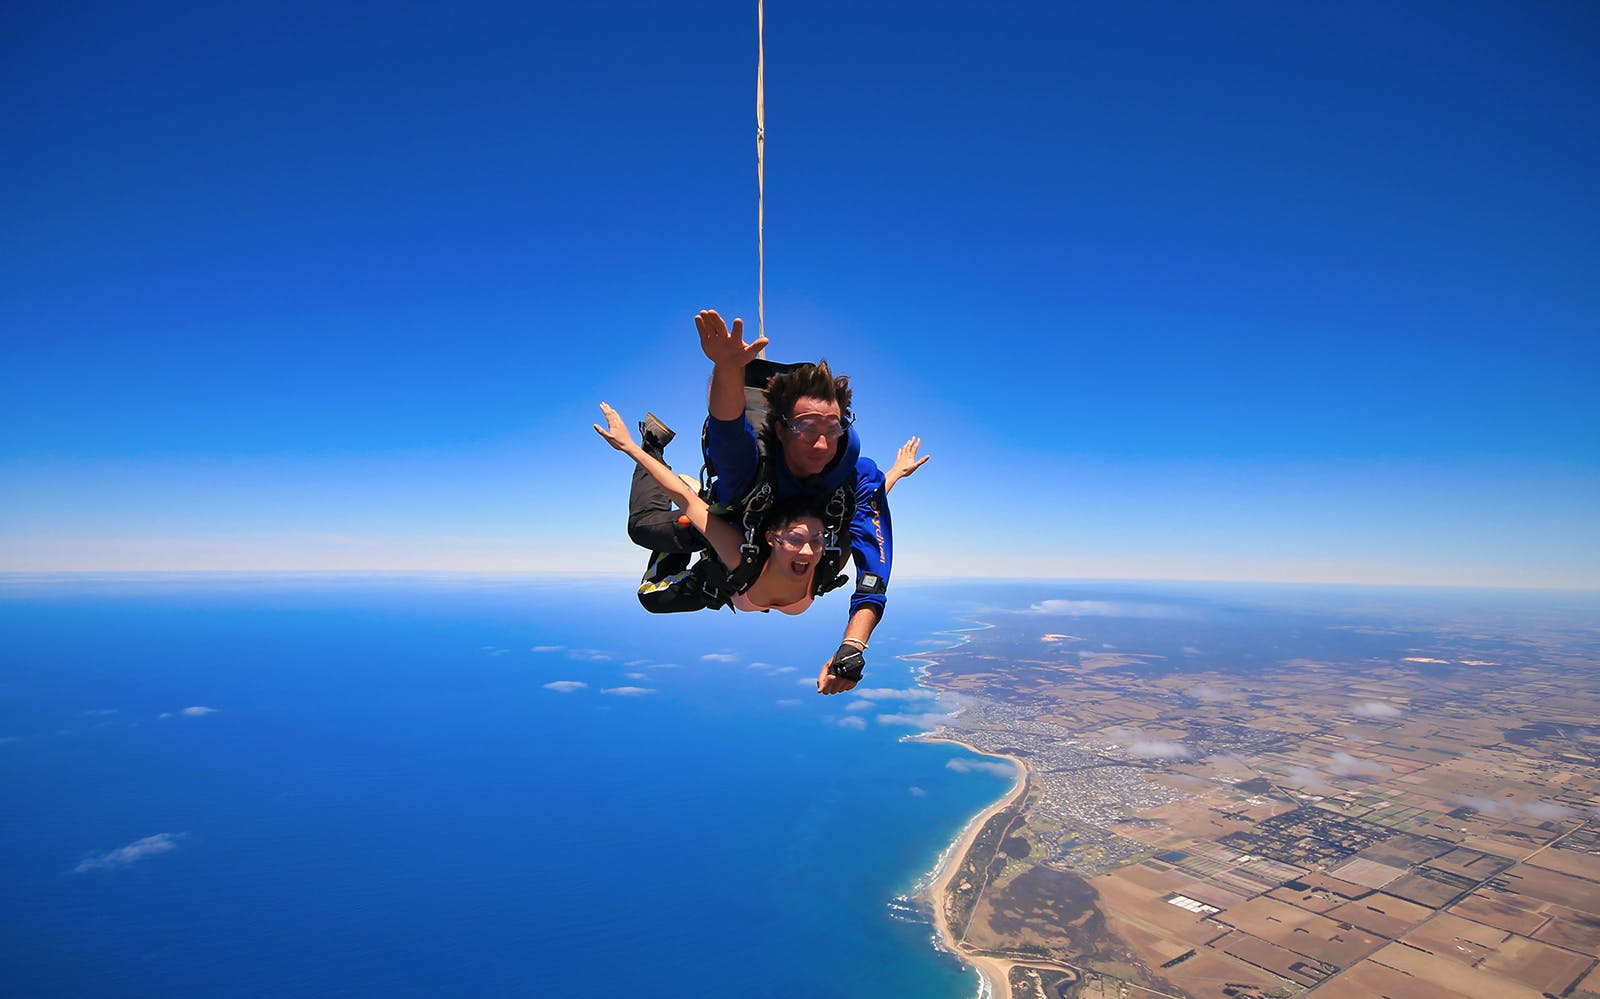 First-time Skydiving: Tips, Safety Guidelines, Rules and More